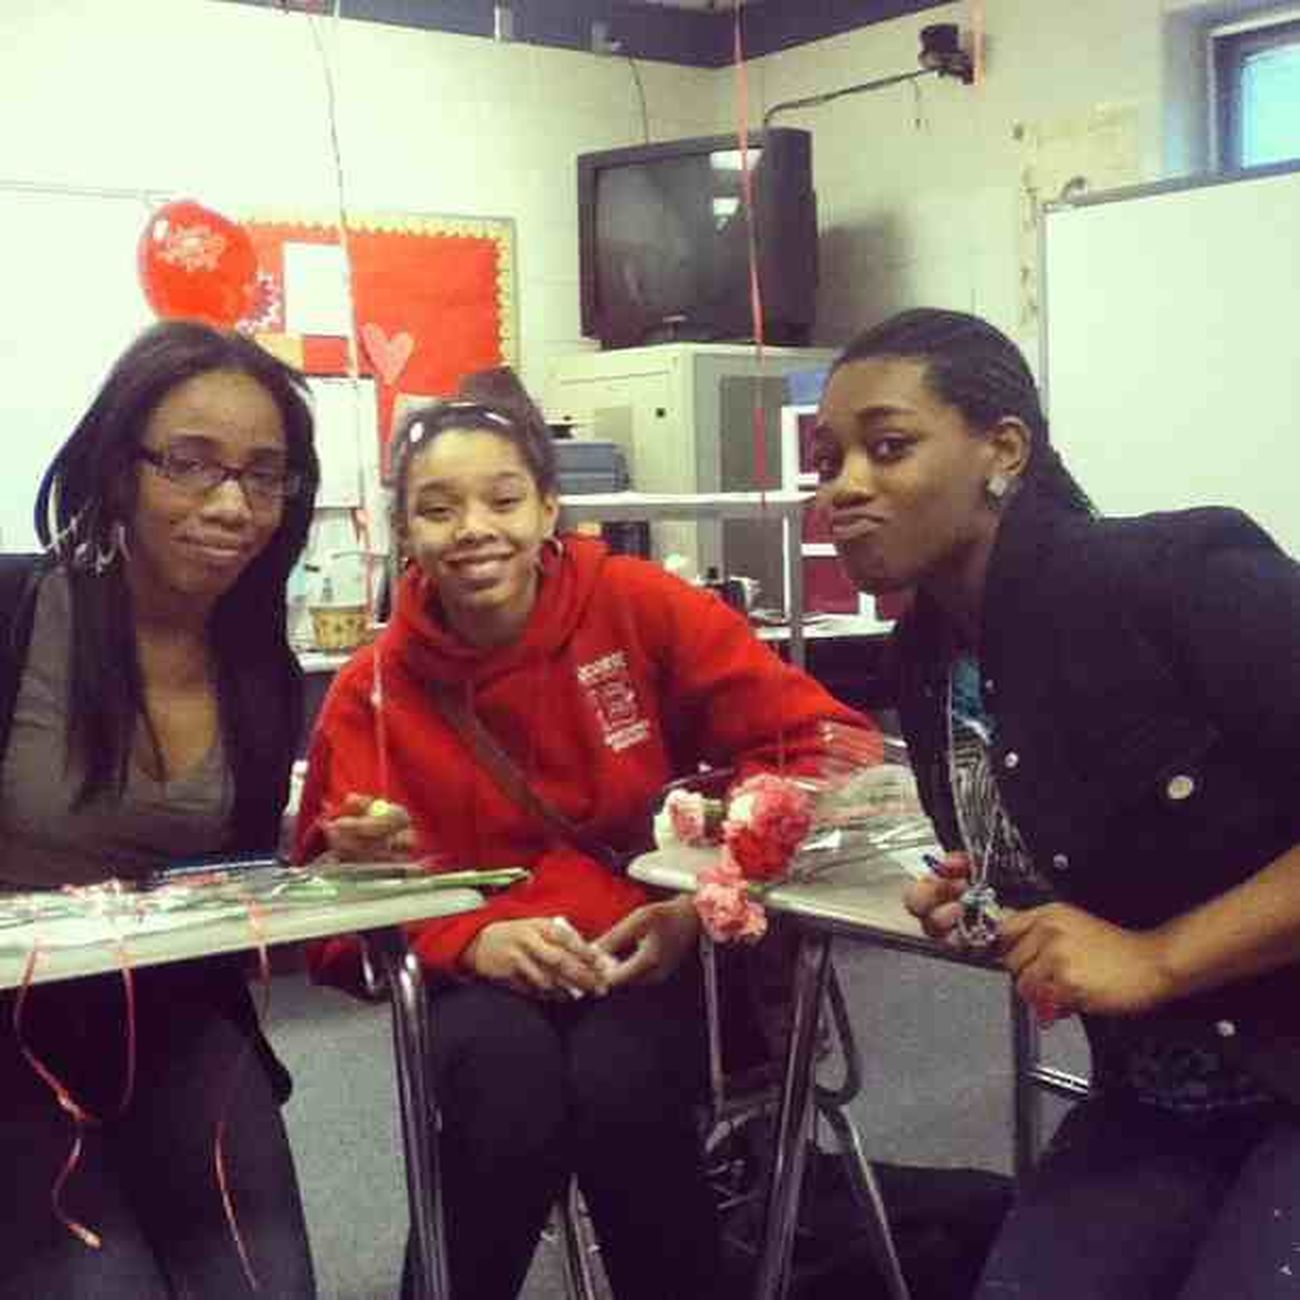 me kennyetta and daliea(: